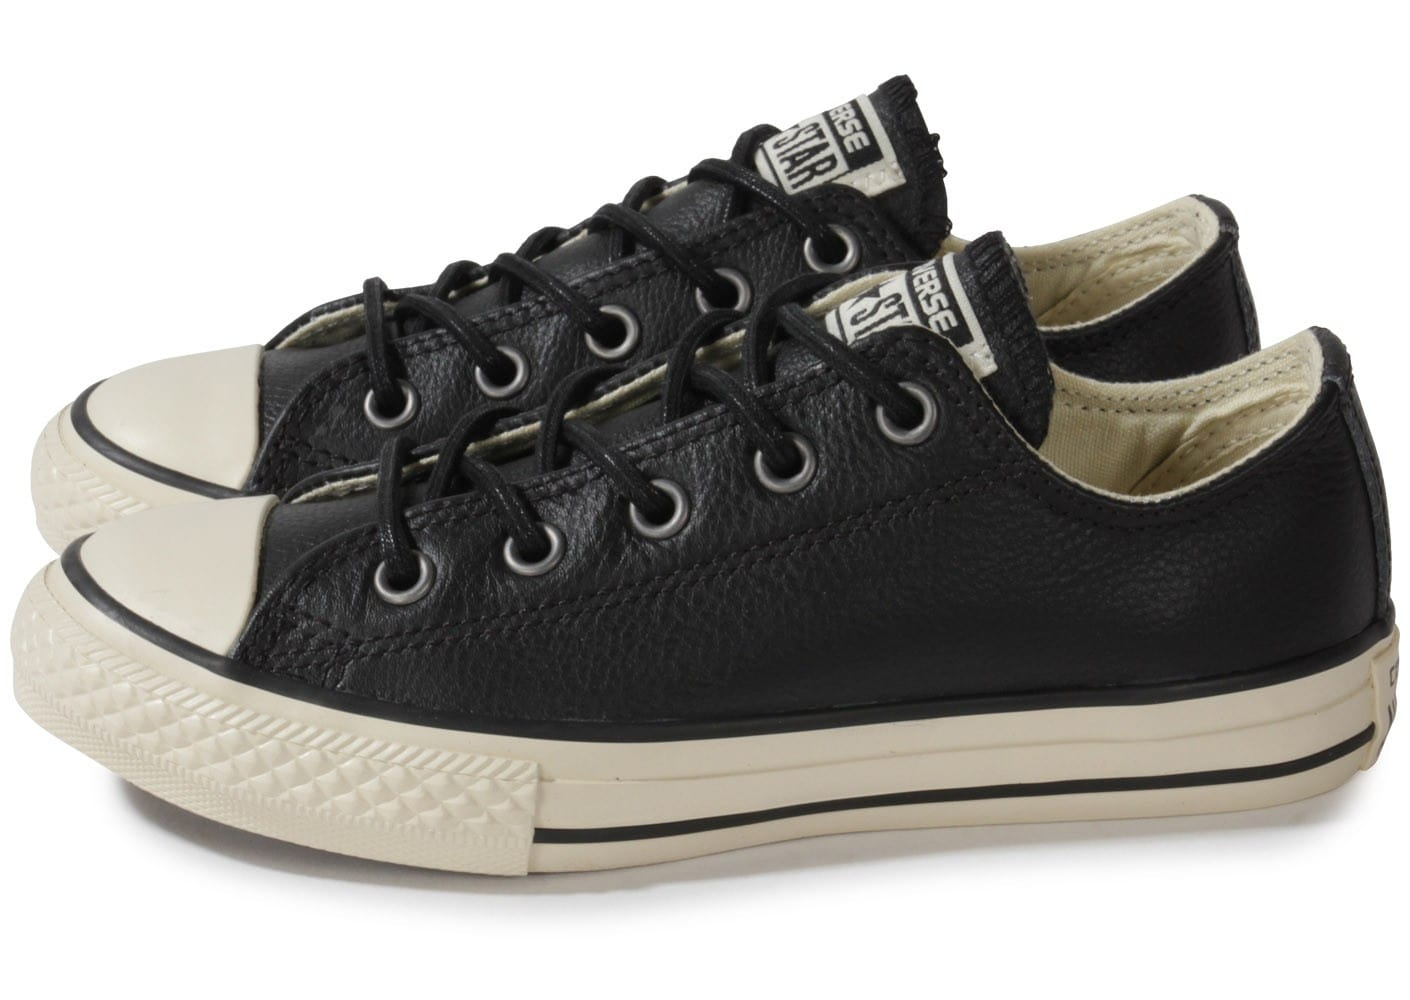 Converse Chuck Taylor All Star low noire Chausport